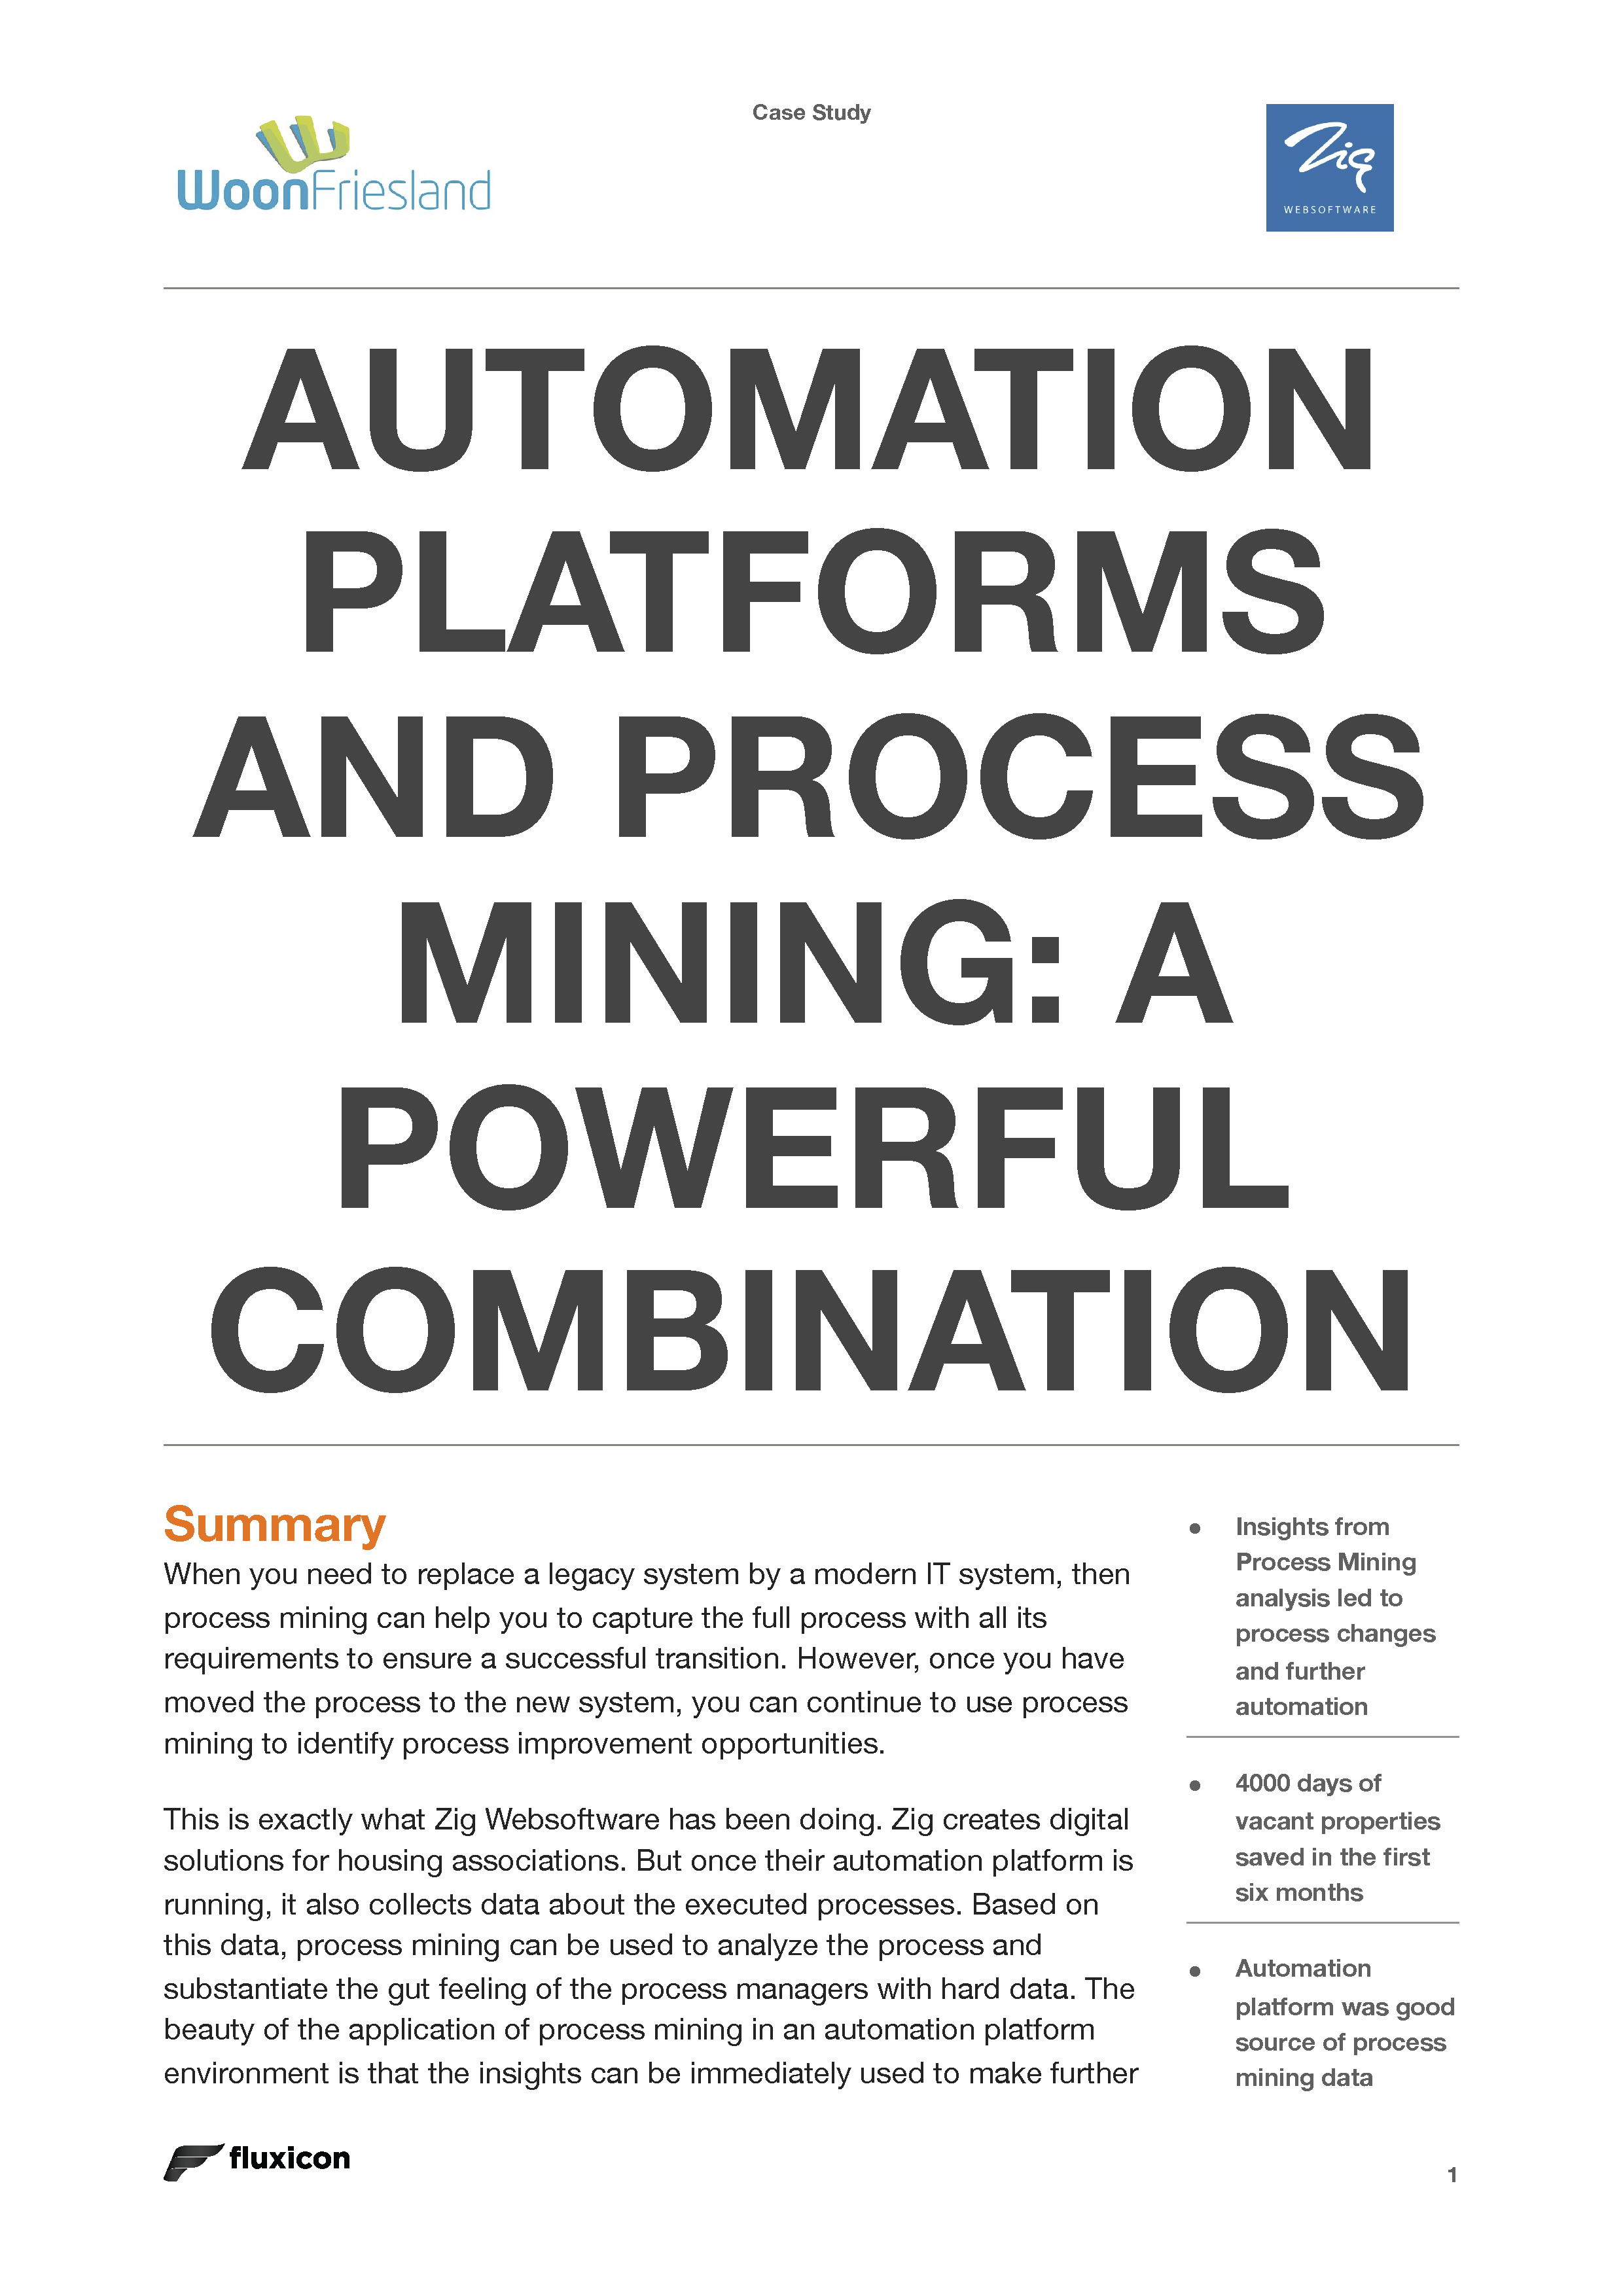 casestudies:automation-and-process-mining-a-powerful-combination.png